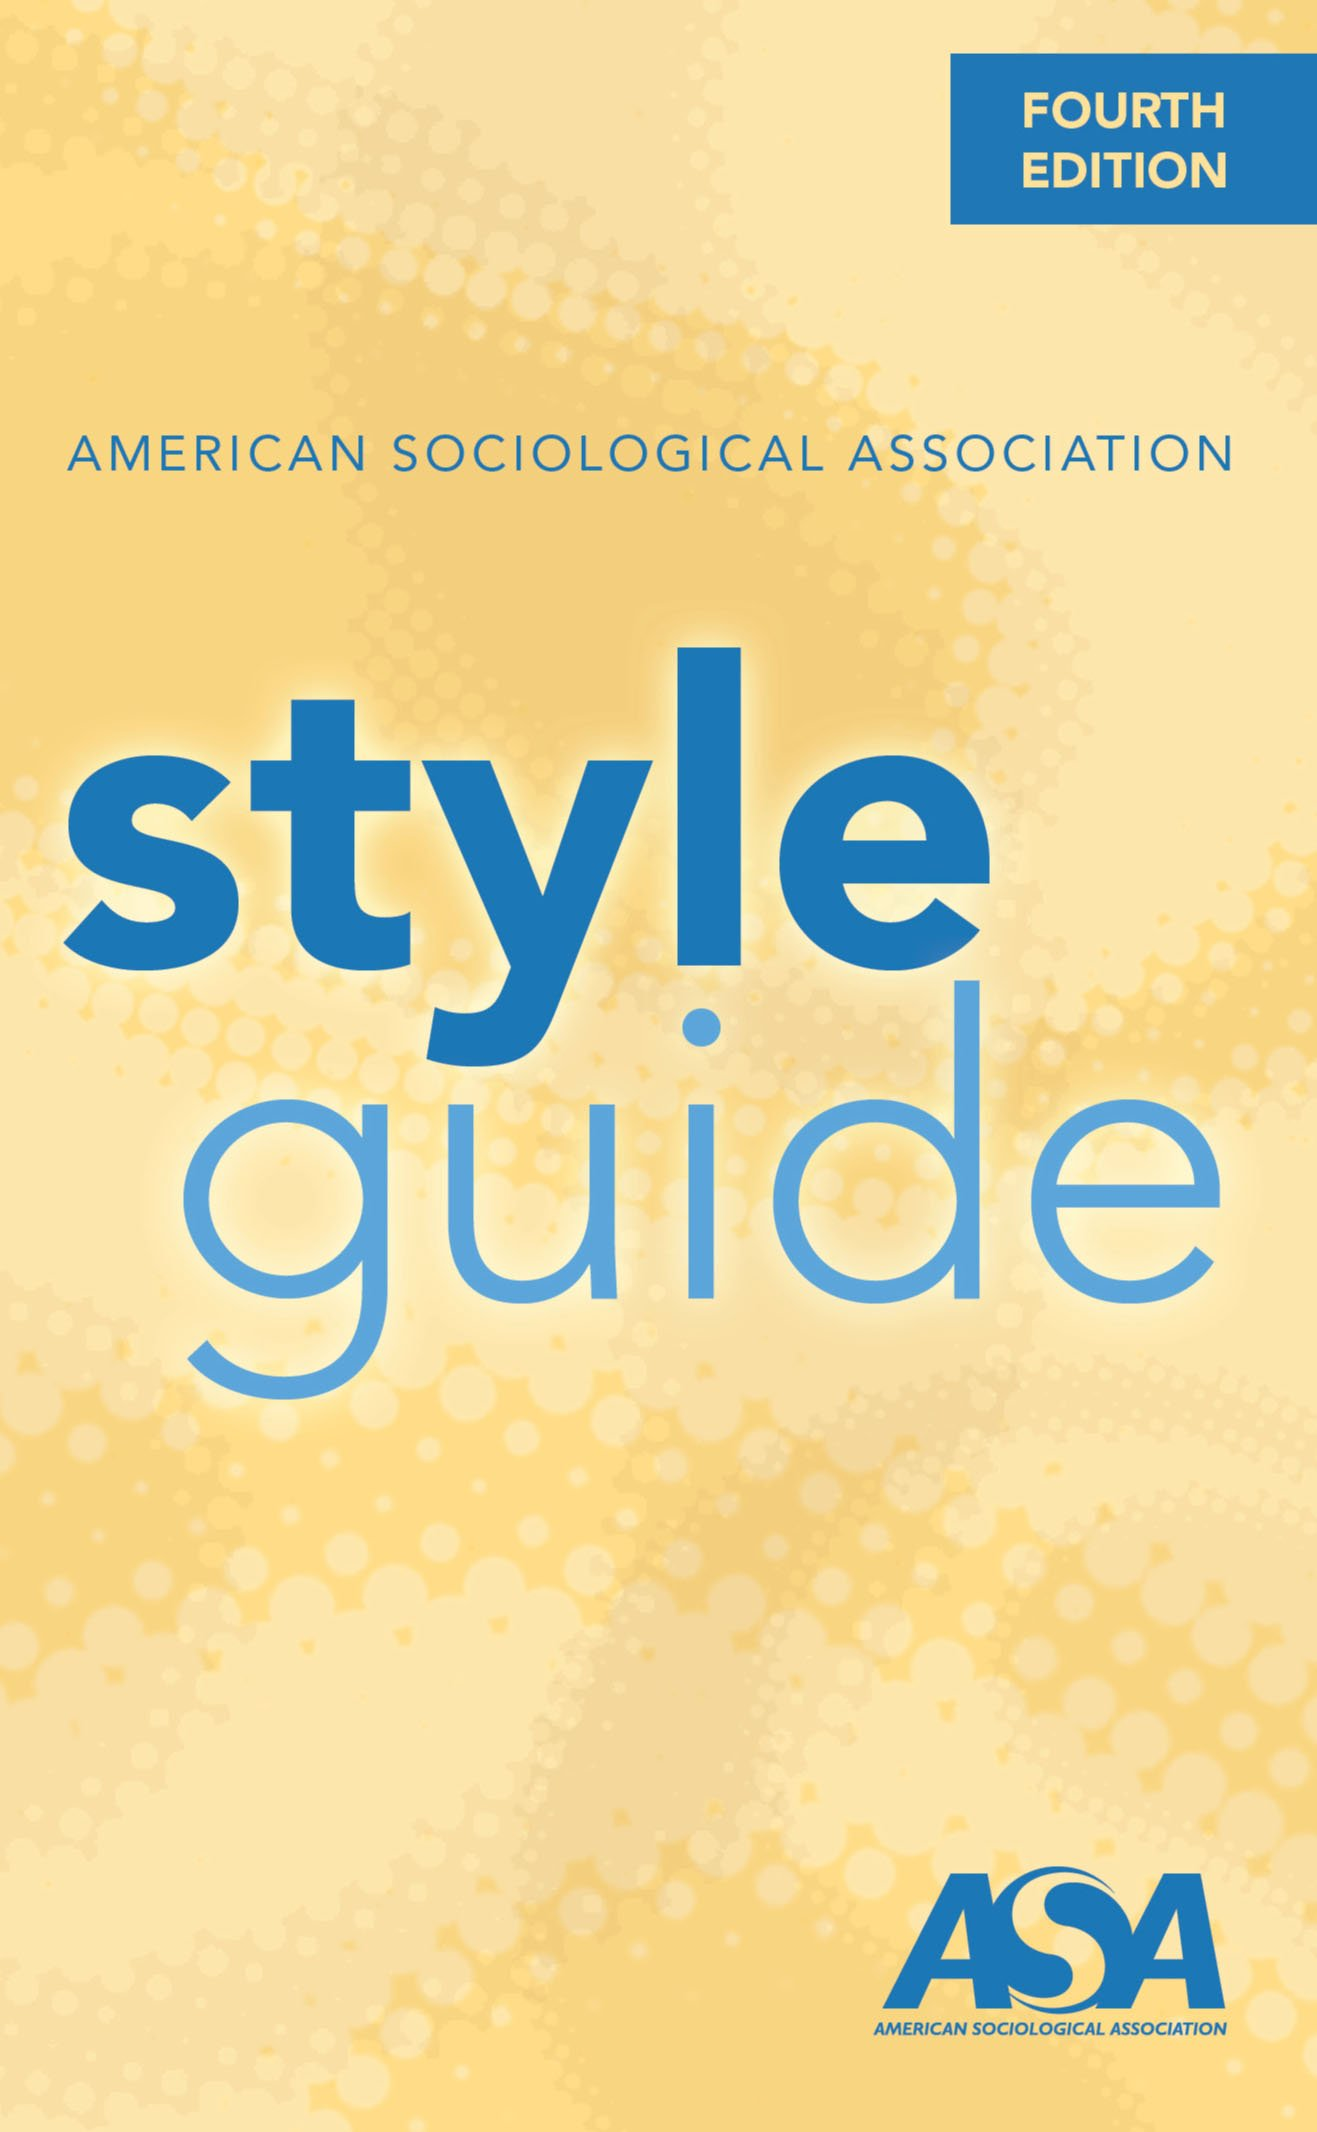 american sociological association style guide american sociological association 9780912764313 amazoncom books